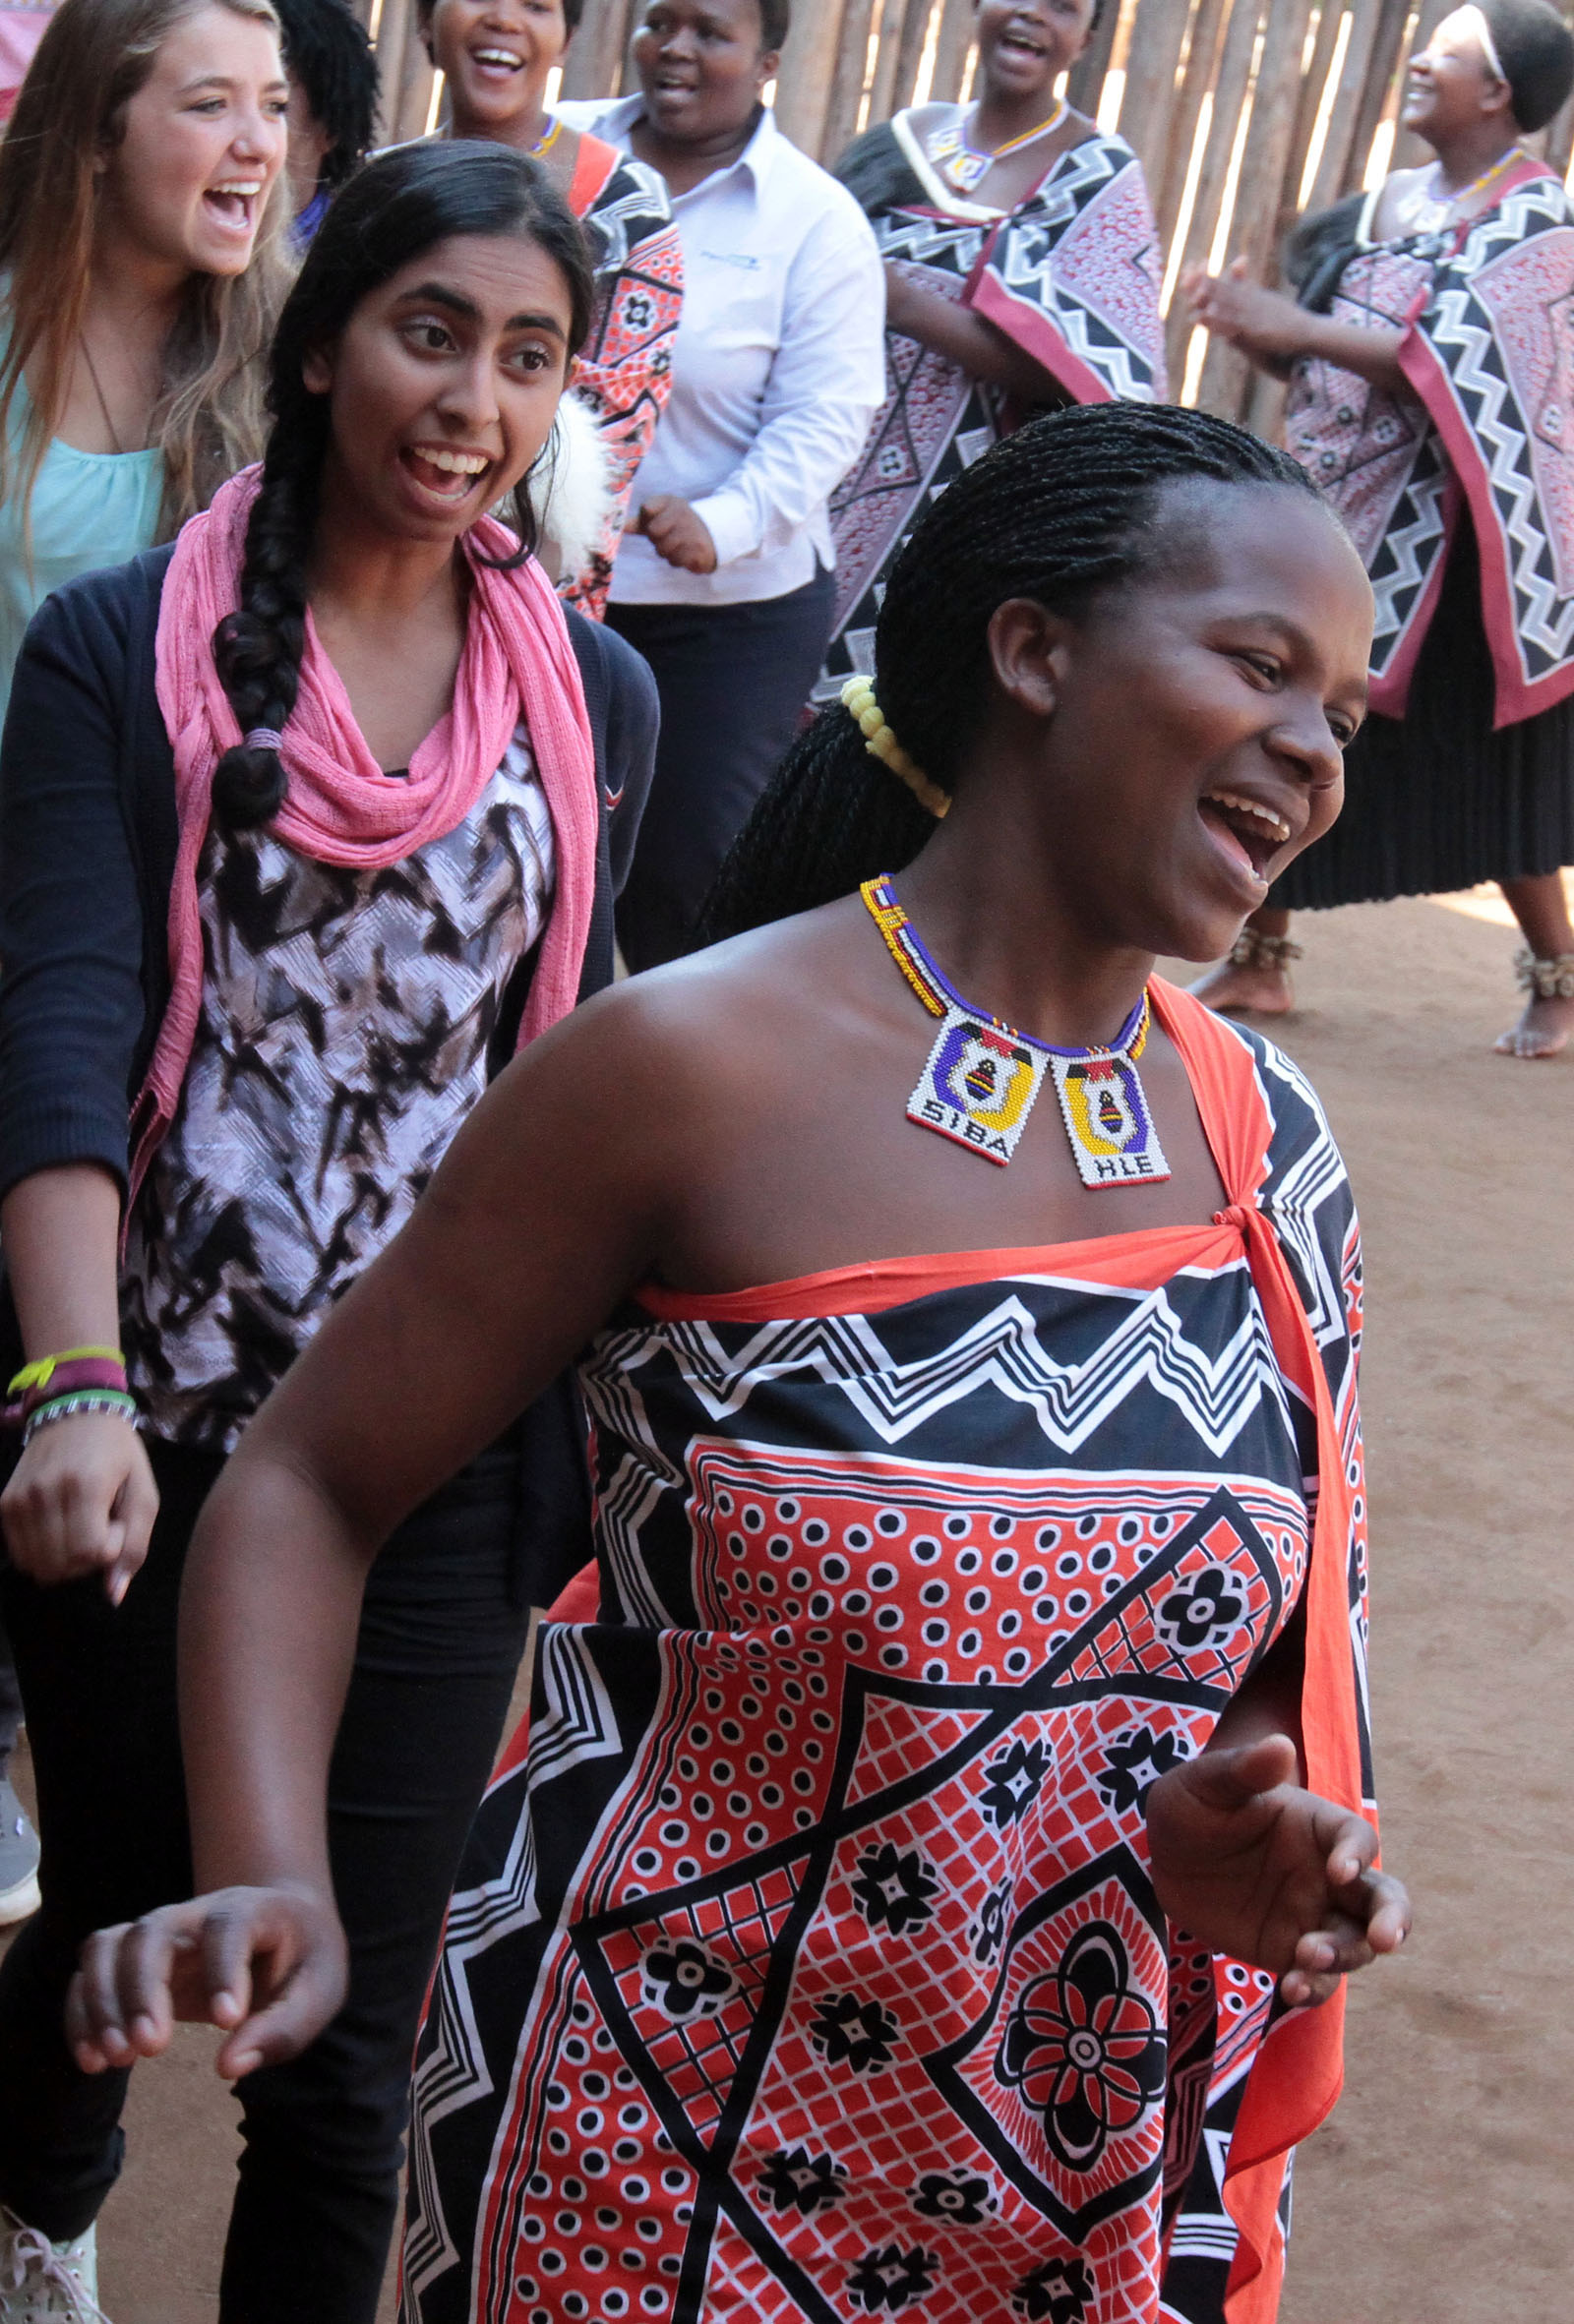 Values culture and community in swaziland we thecheapjerseys Image collections